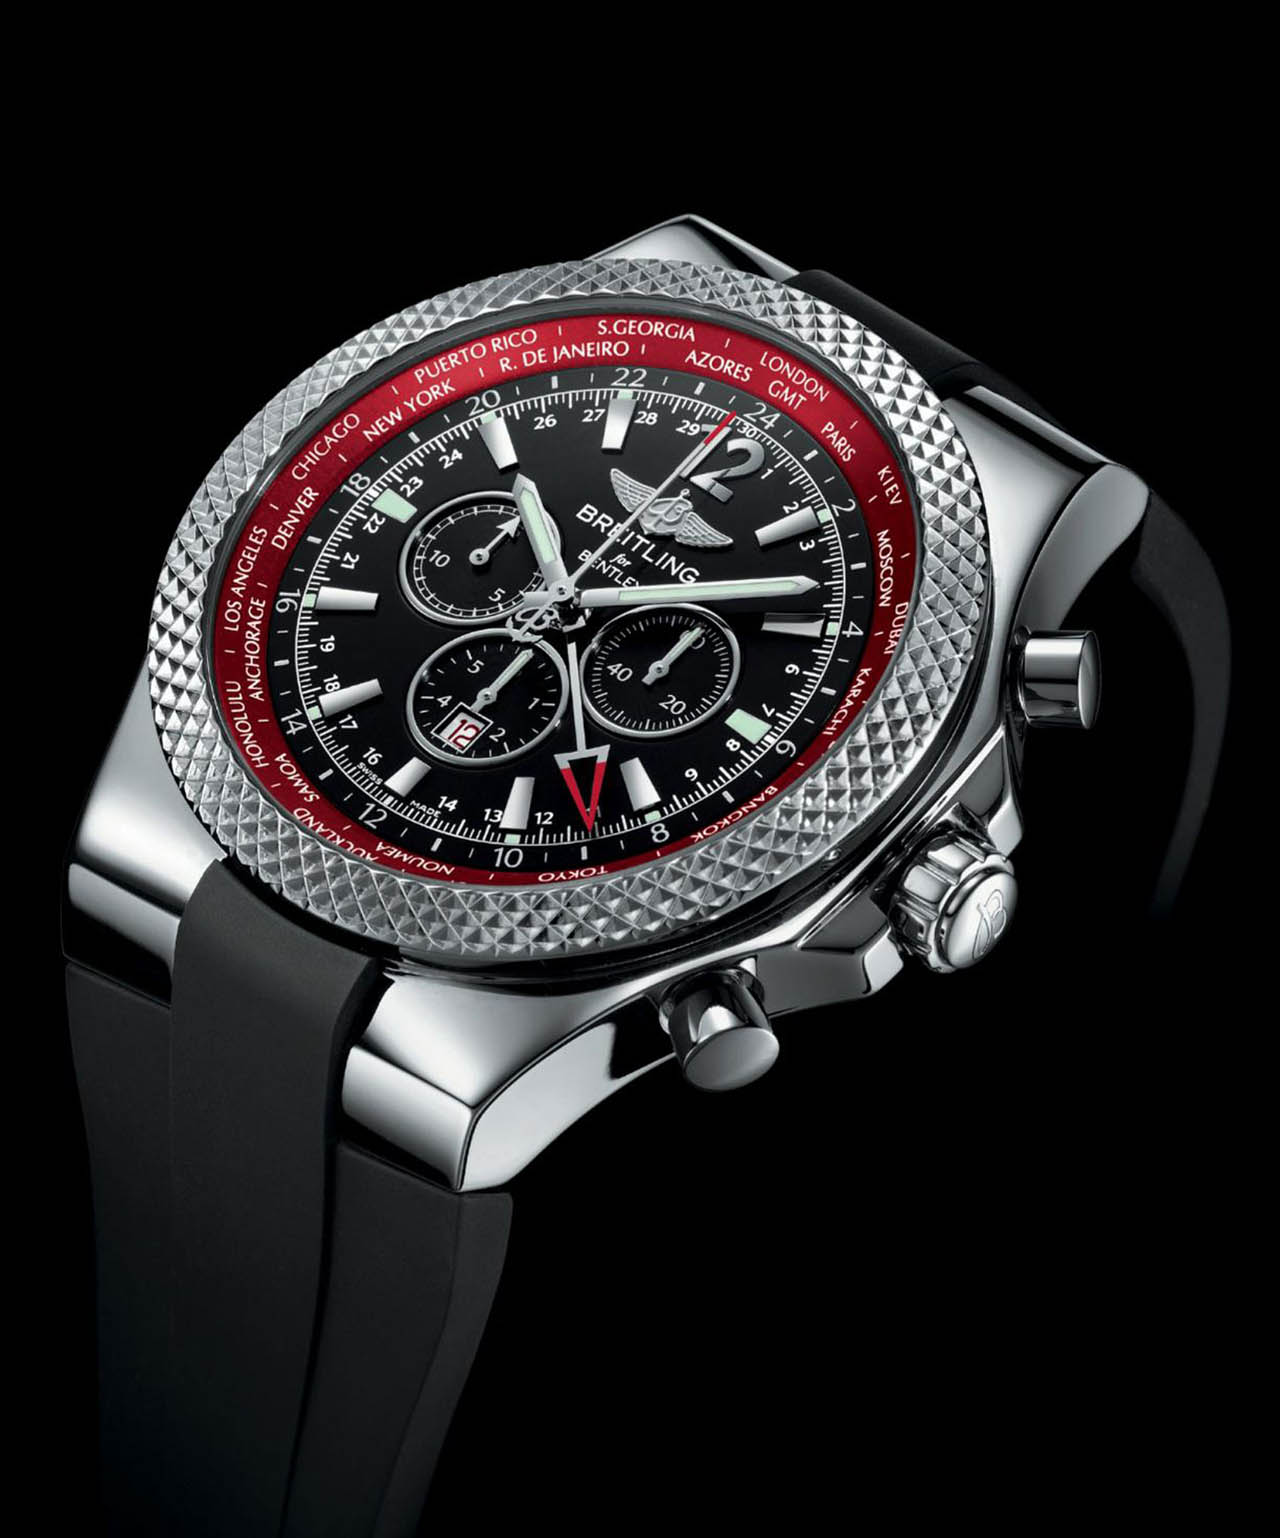 Breitling Bentley Gt Wristwatches: Breitling Celebrates New Continental GT With GMT V8